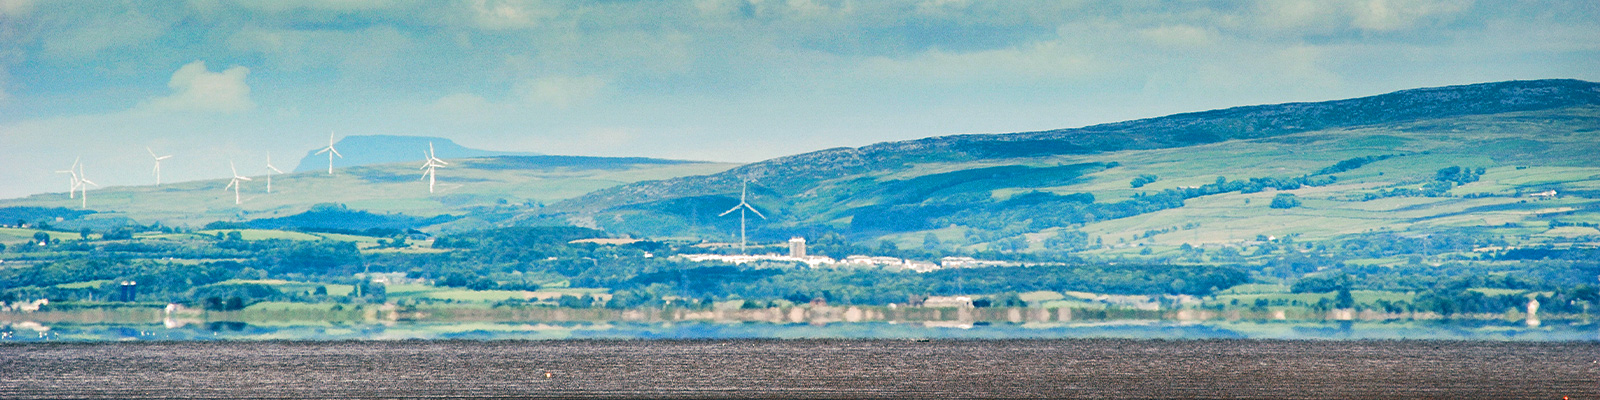 Looking across Morecambe Bay to Lancaster University